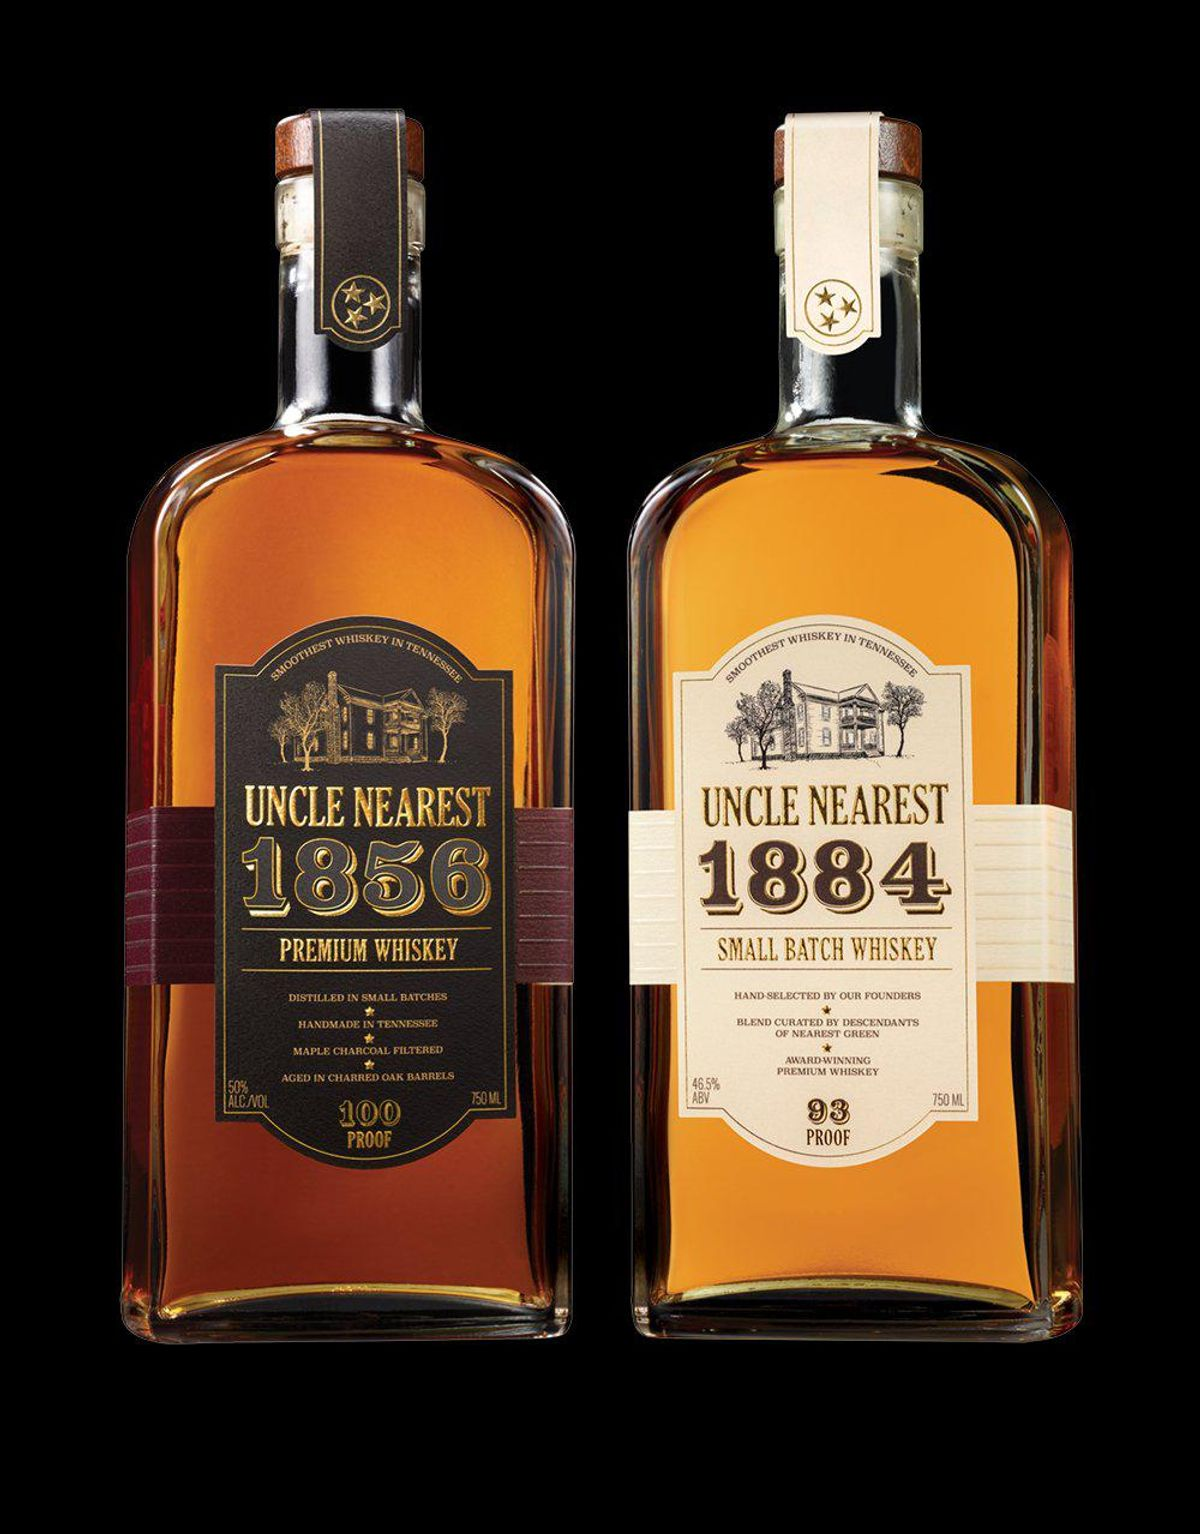 1856 Premium Aged Whiskey and 1884 Small Batch Whiskey